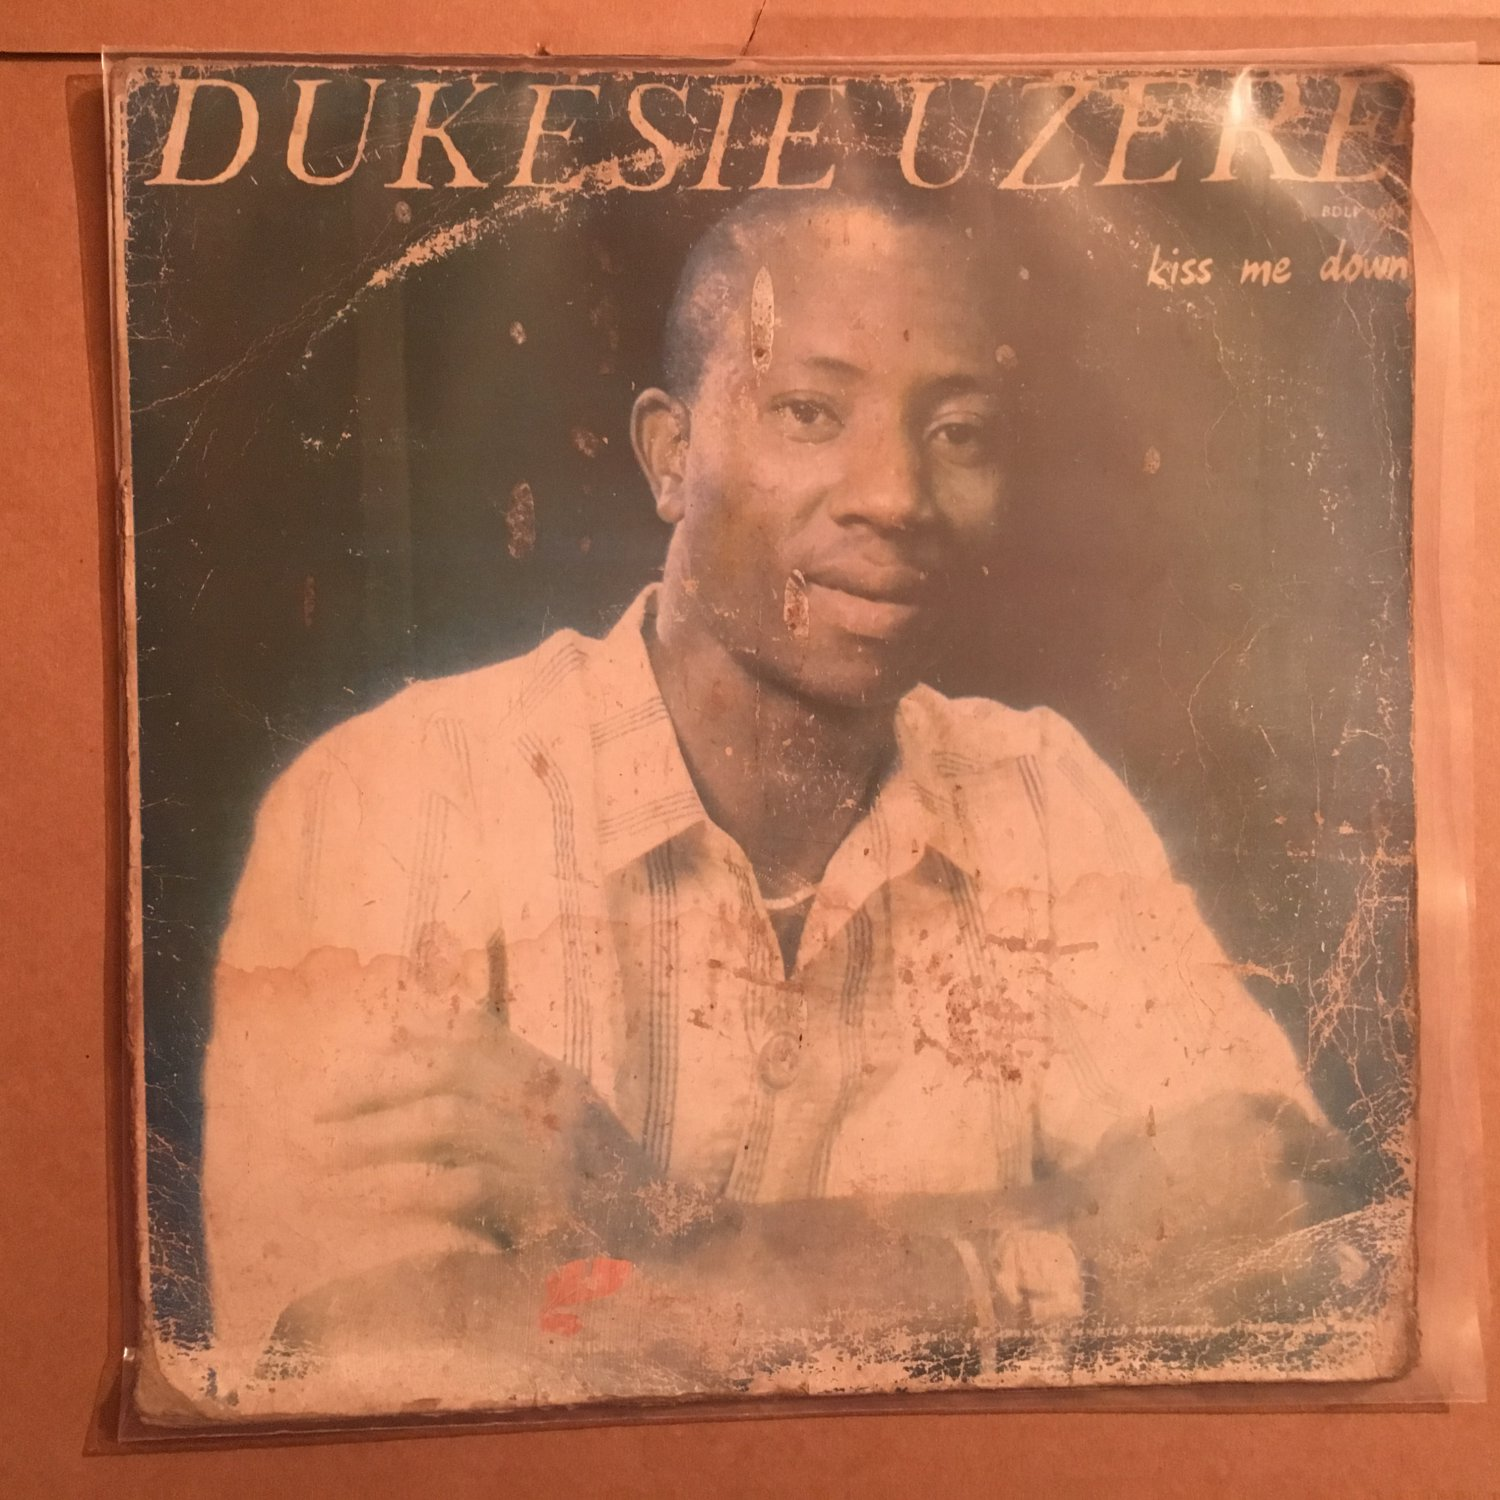 DUKESIE UZERIE LP kiss me down NIGERIA SYNTH FUNK REGGAE mp3 LISTEN